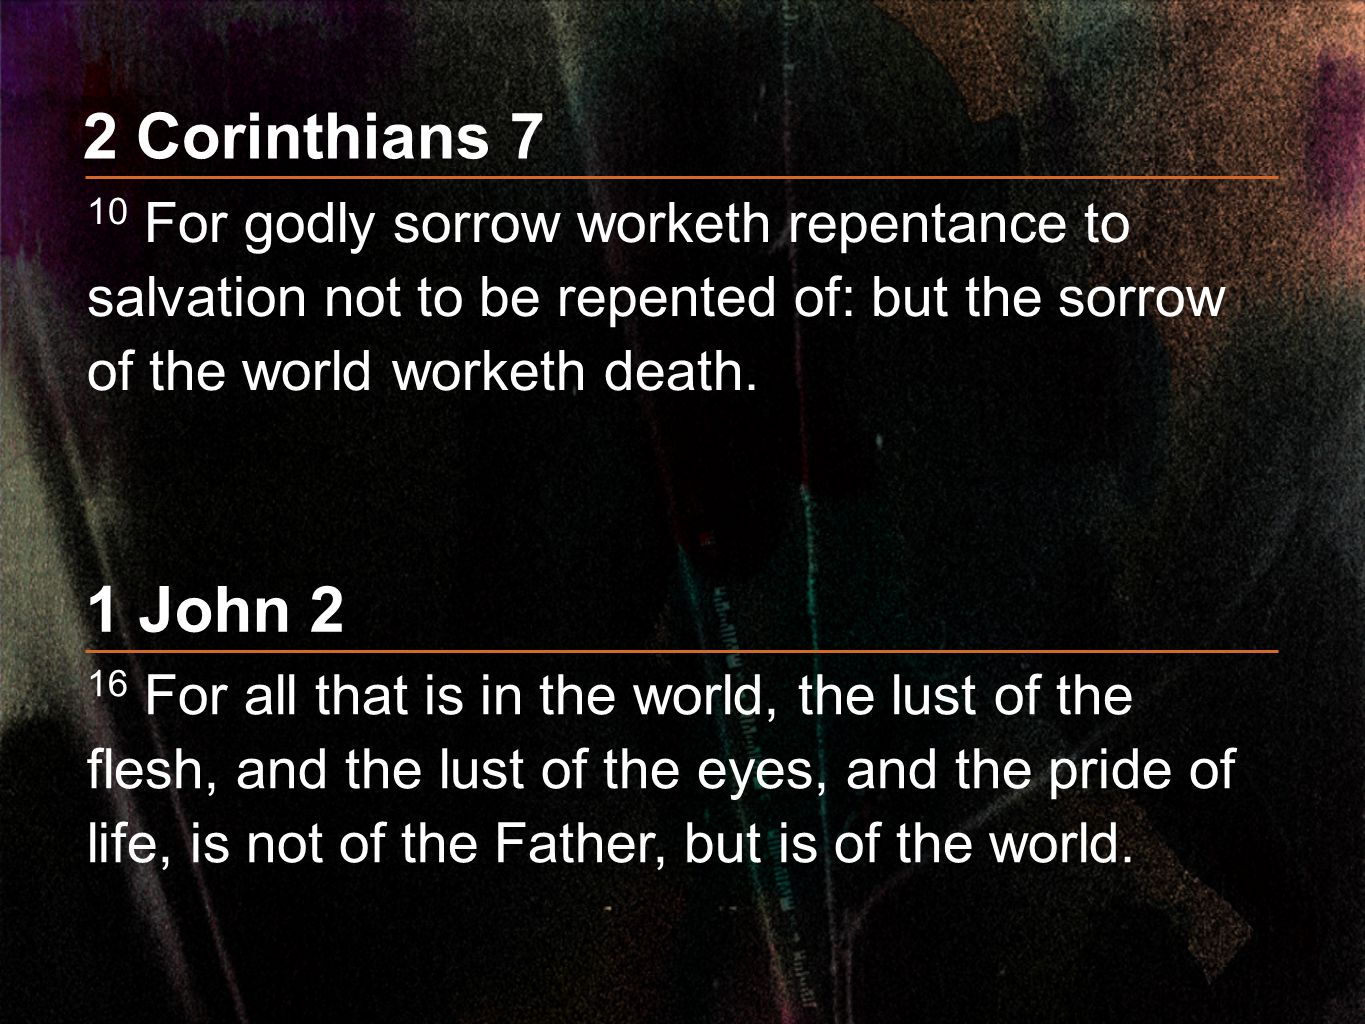 2 Corinthians 7 10 For godly sorrow worketh repentance to salvation not to be repented of: but the sorrow of the world worketh death.